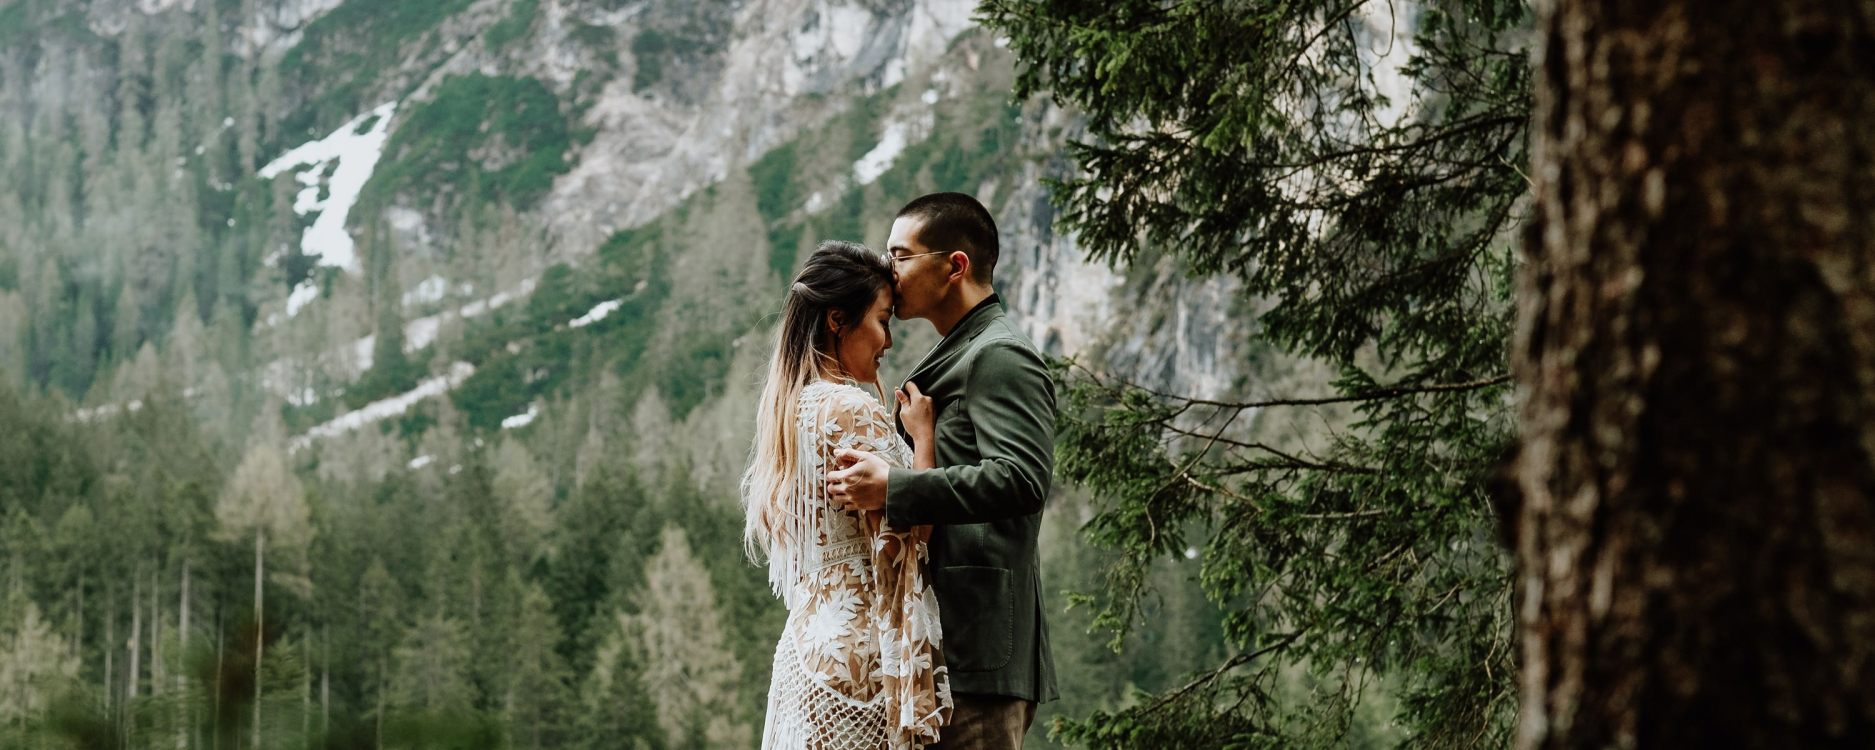 Dolomites Elopement on We Are The Wanderers Advenrtue Wedding Blog by Wild Connections Photography